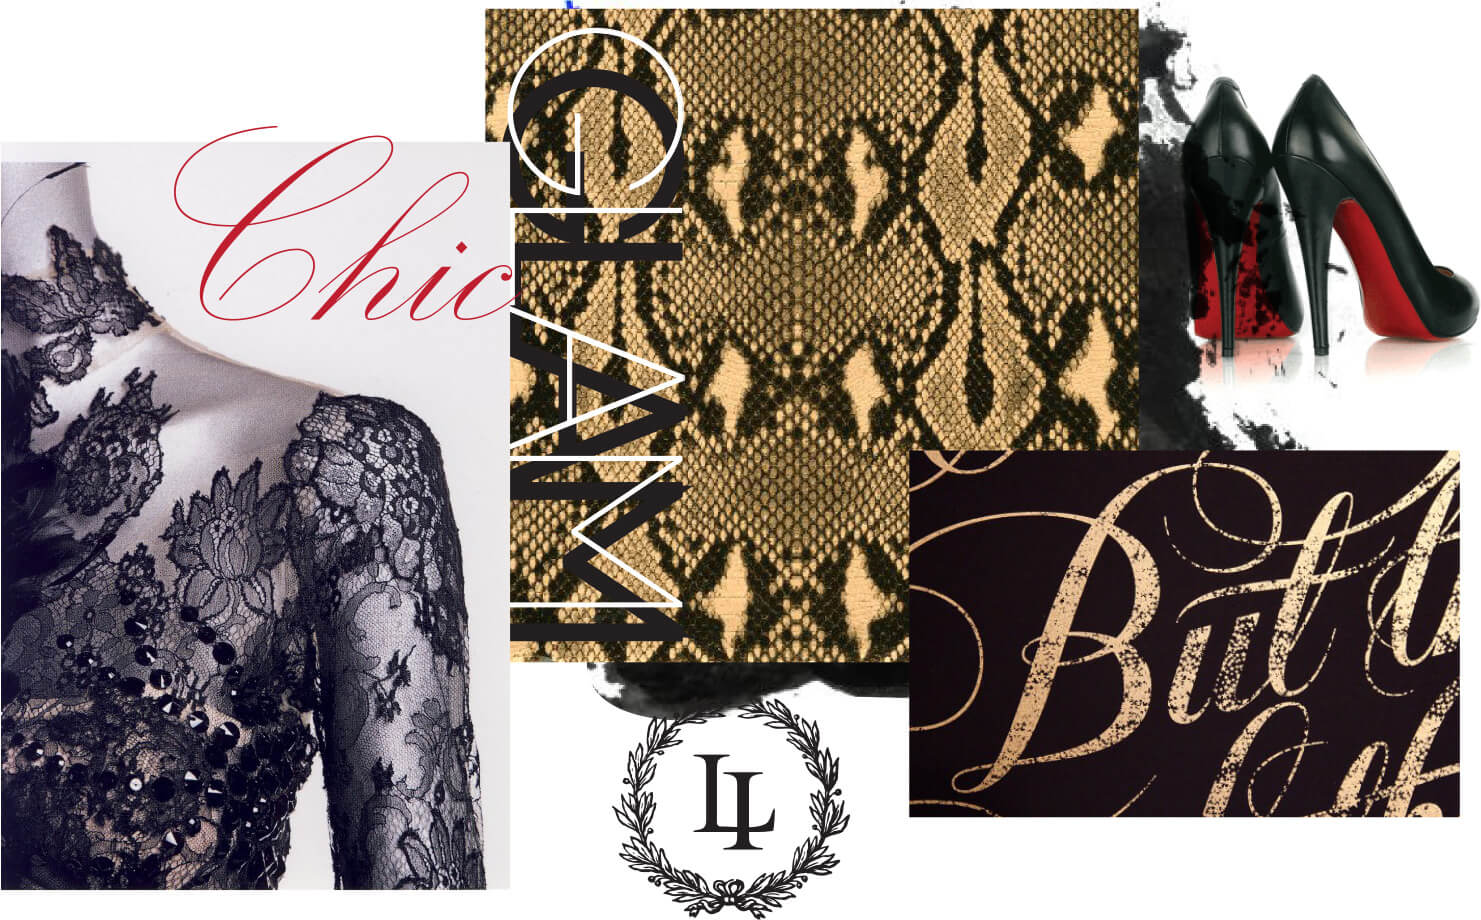 Christian Louboutin, black lace and typography inspired images